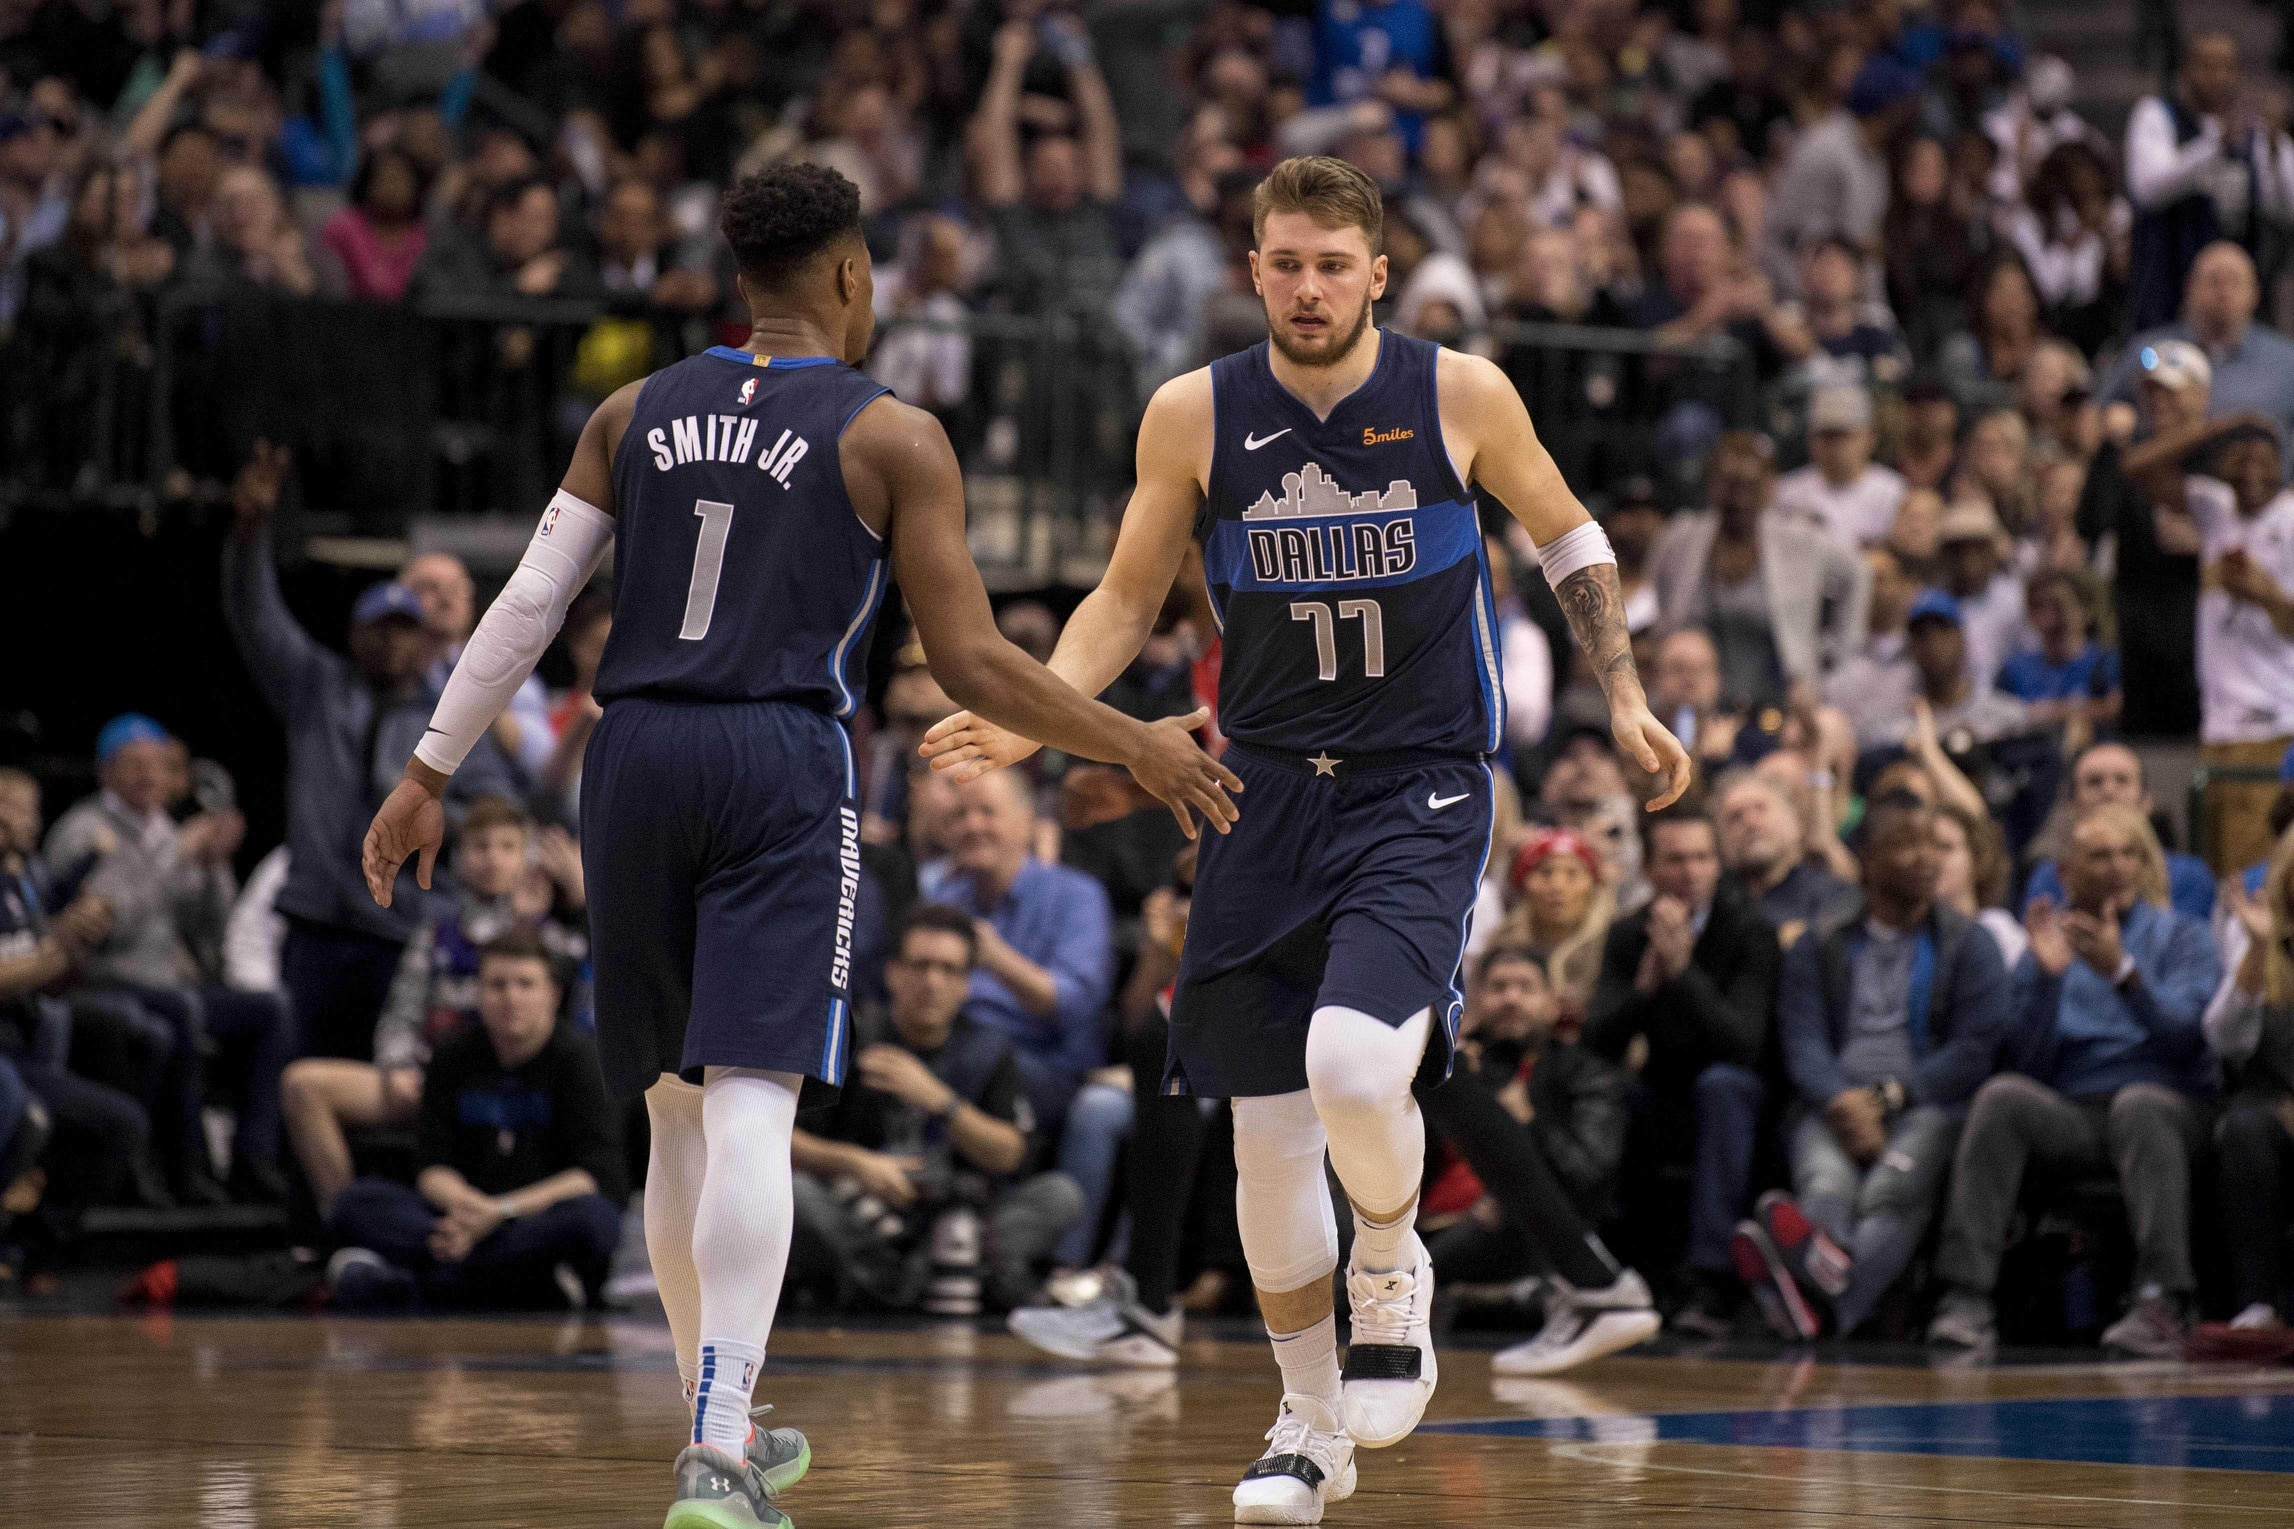 bafa685b15e WATCH: Luka Doncic with incredible pass for alley-oop